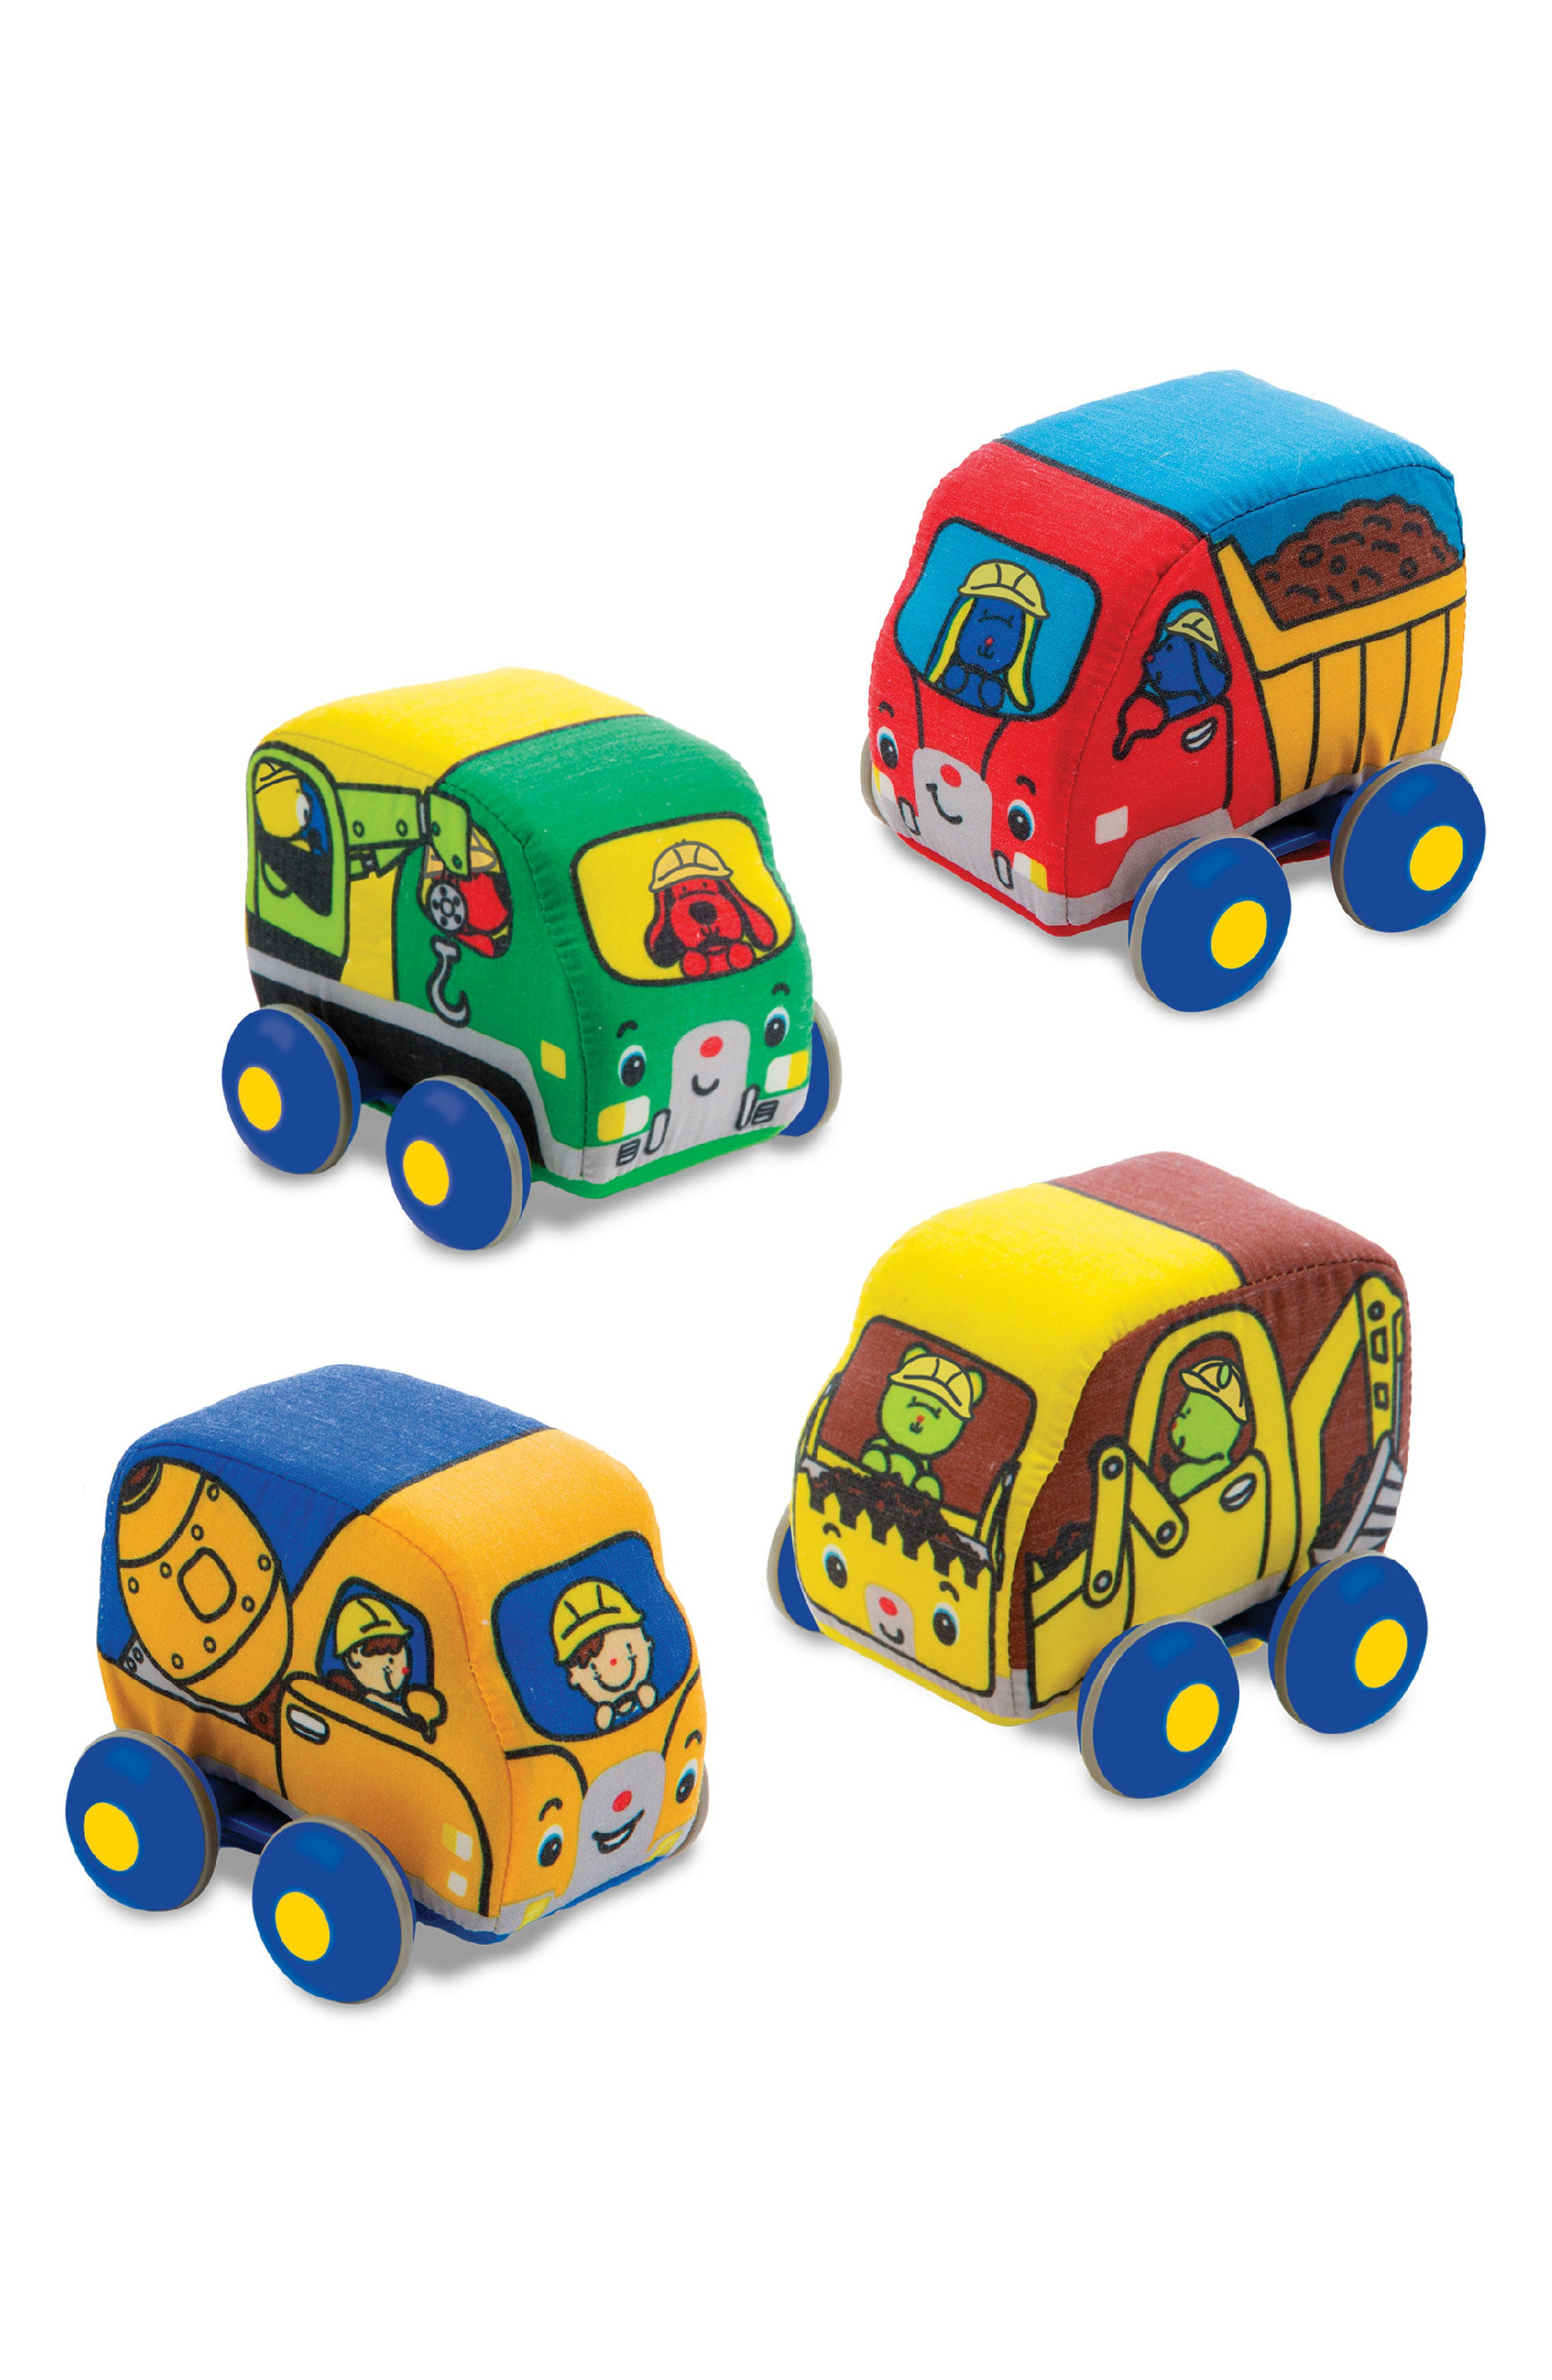 4-Pack Pull Back Construction Vehicle Play Set,                             Alternate thumbnail 2, color,                             700